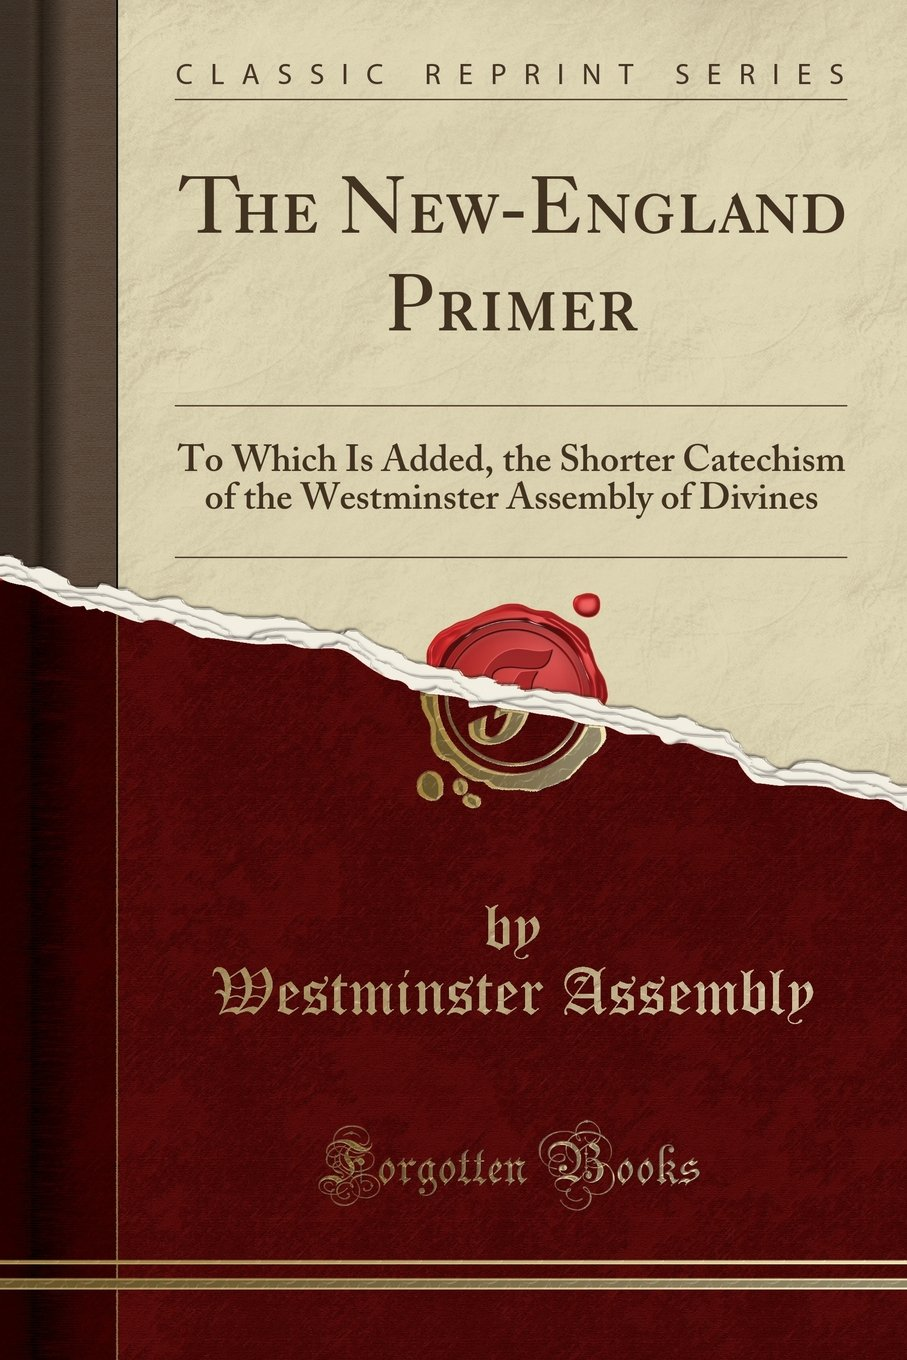 The New-England Primer: To Which Is Added, the Shorter Catechism of the Westminster Assembly of Divines (Classic Reprint) ebook